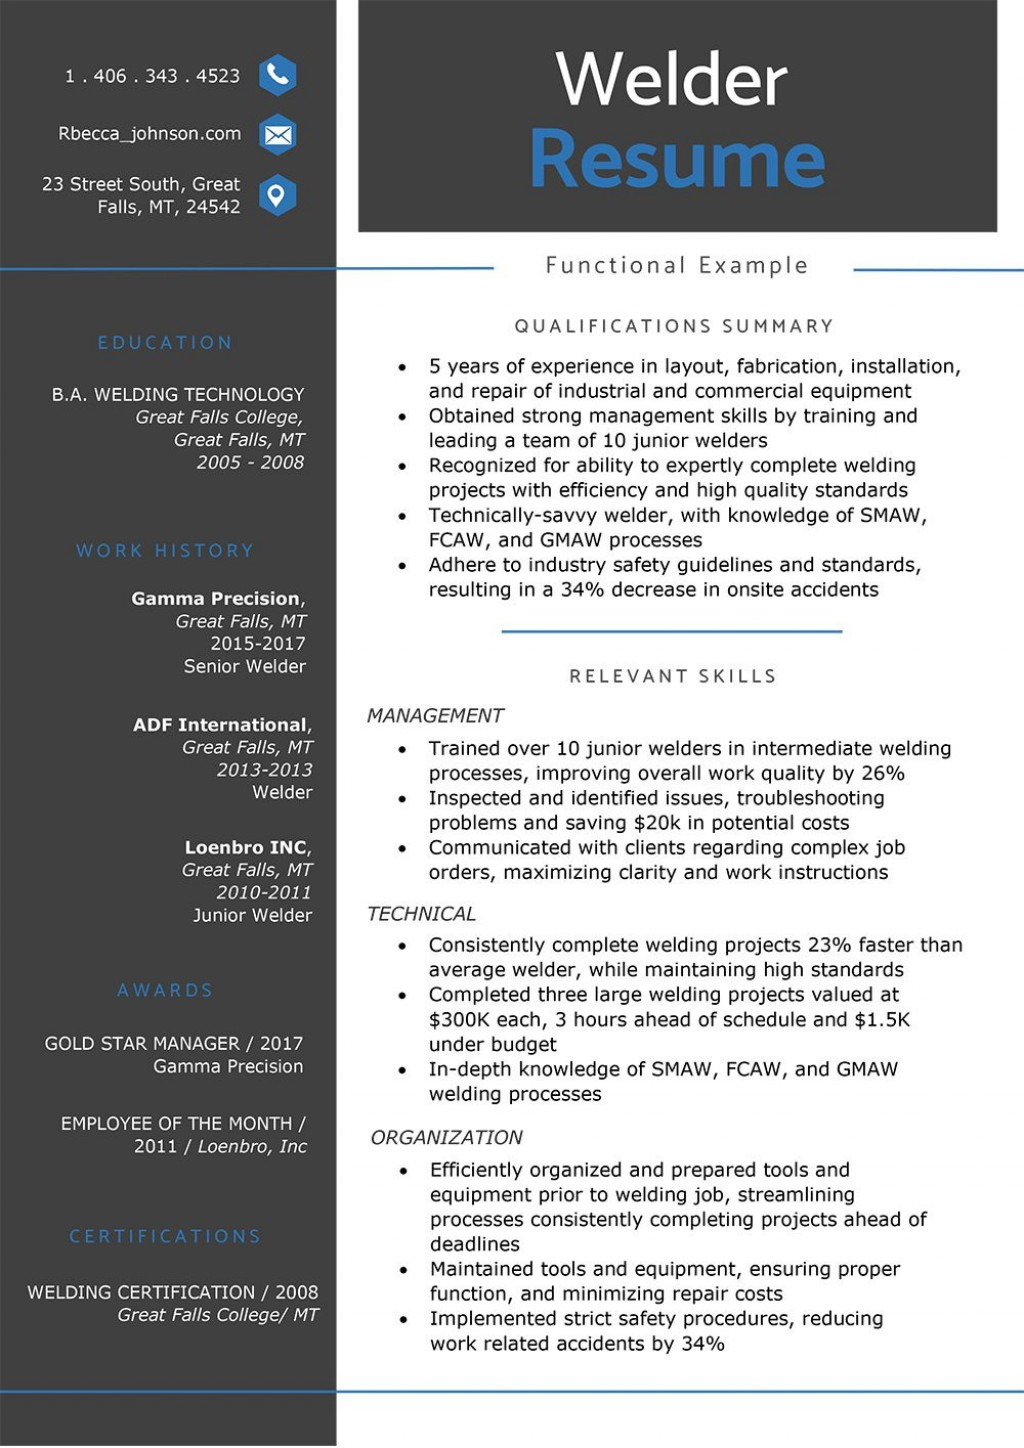 008 Awful Functional Resume Template Free Design Large